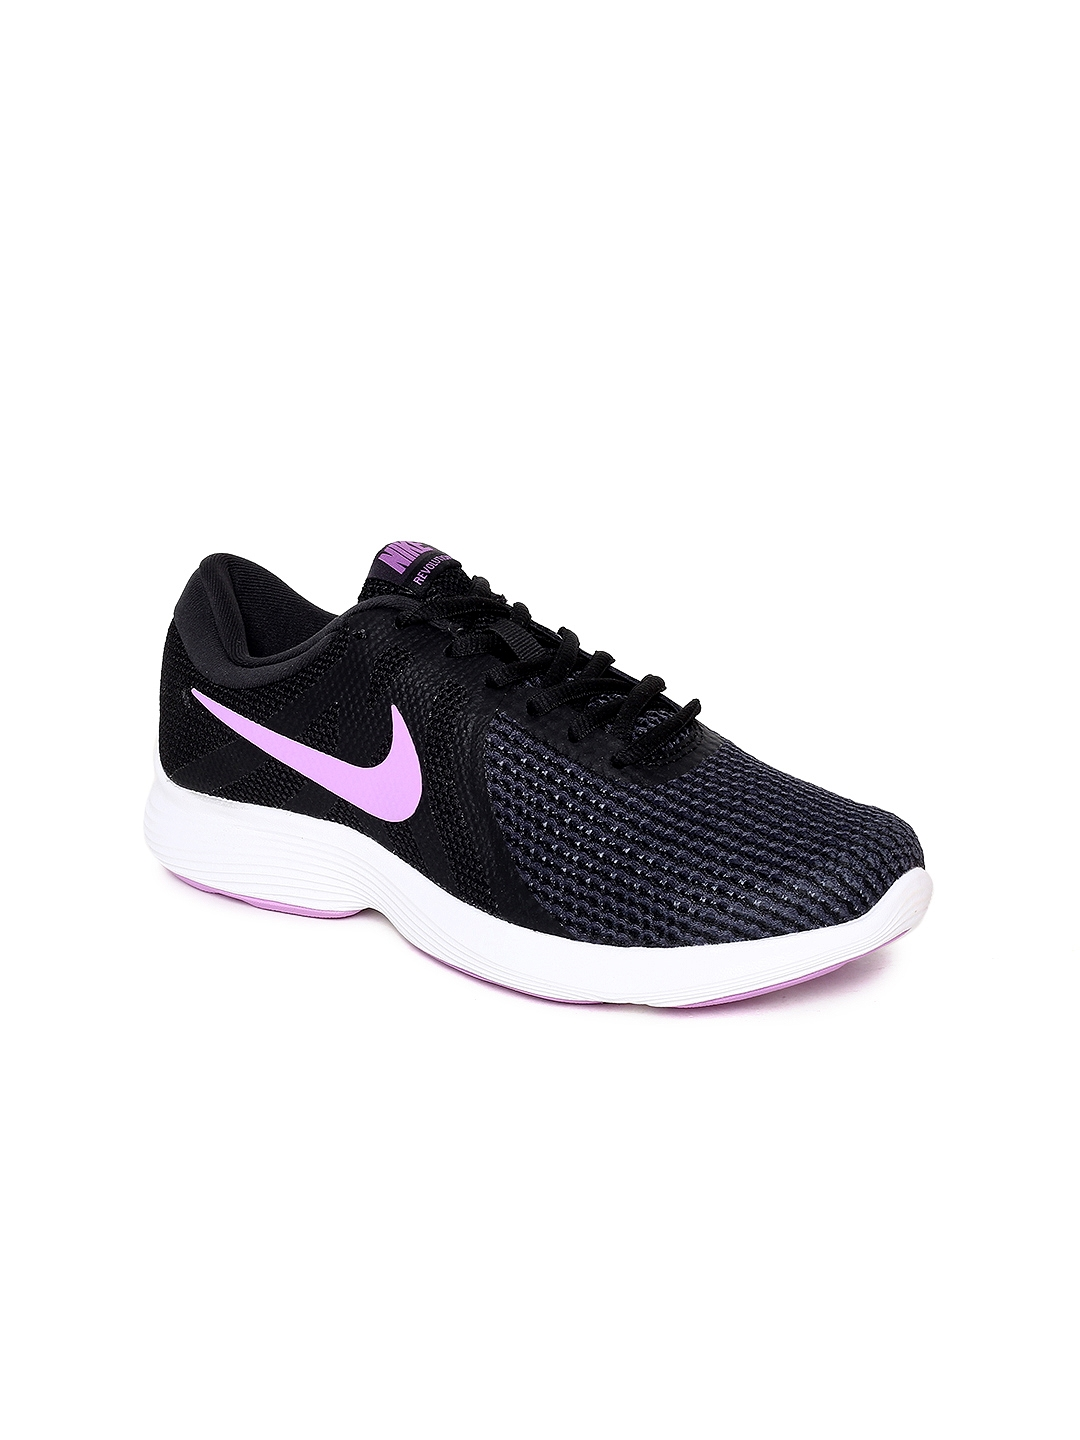 a8e9d07054650 Buy Nike Women Black REVOLUTION 4 Running Shoes - Sports Shoes for ...